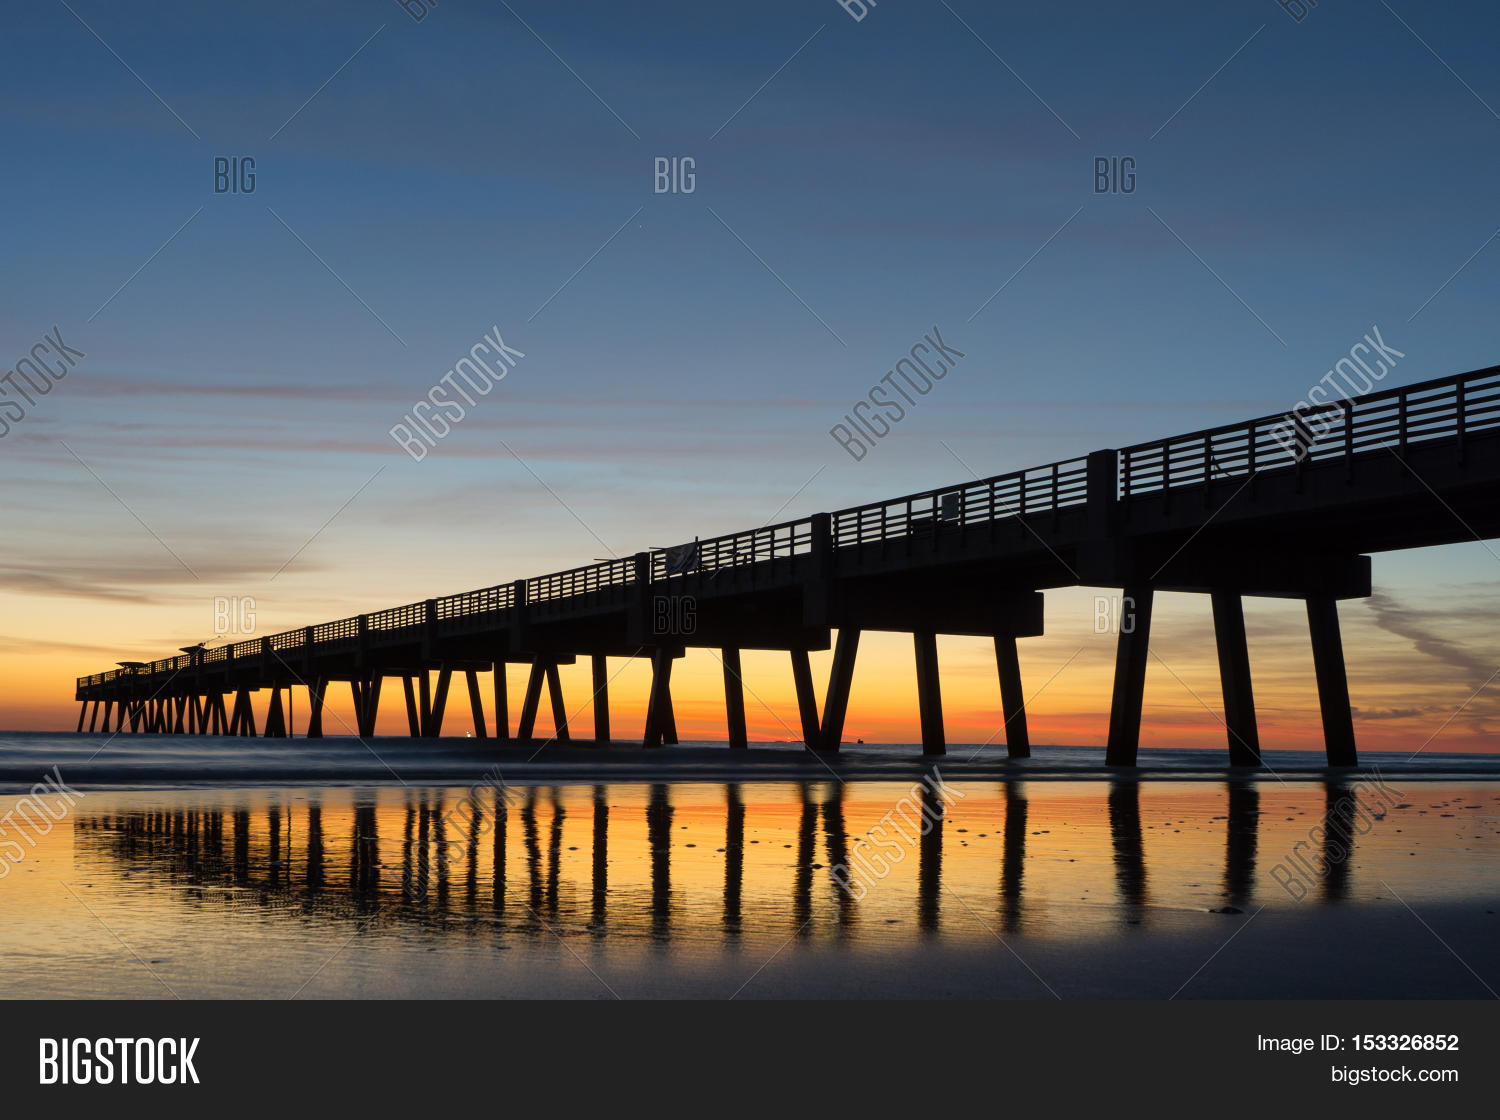 Jacksonville beach fishing pier image photo bigstock for Fishing piers in jacksonville fl